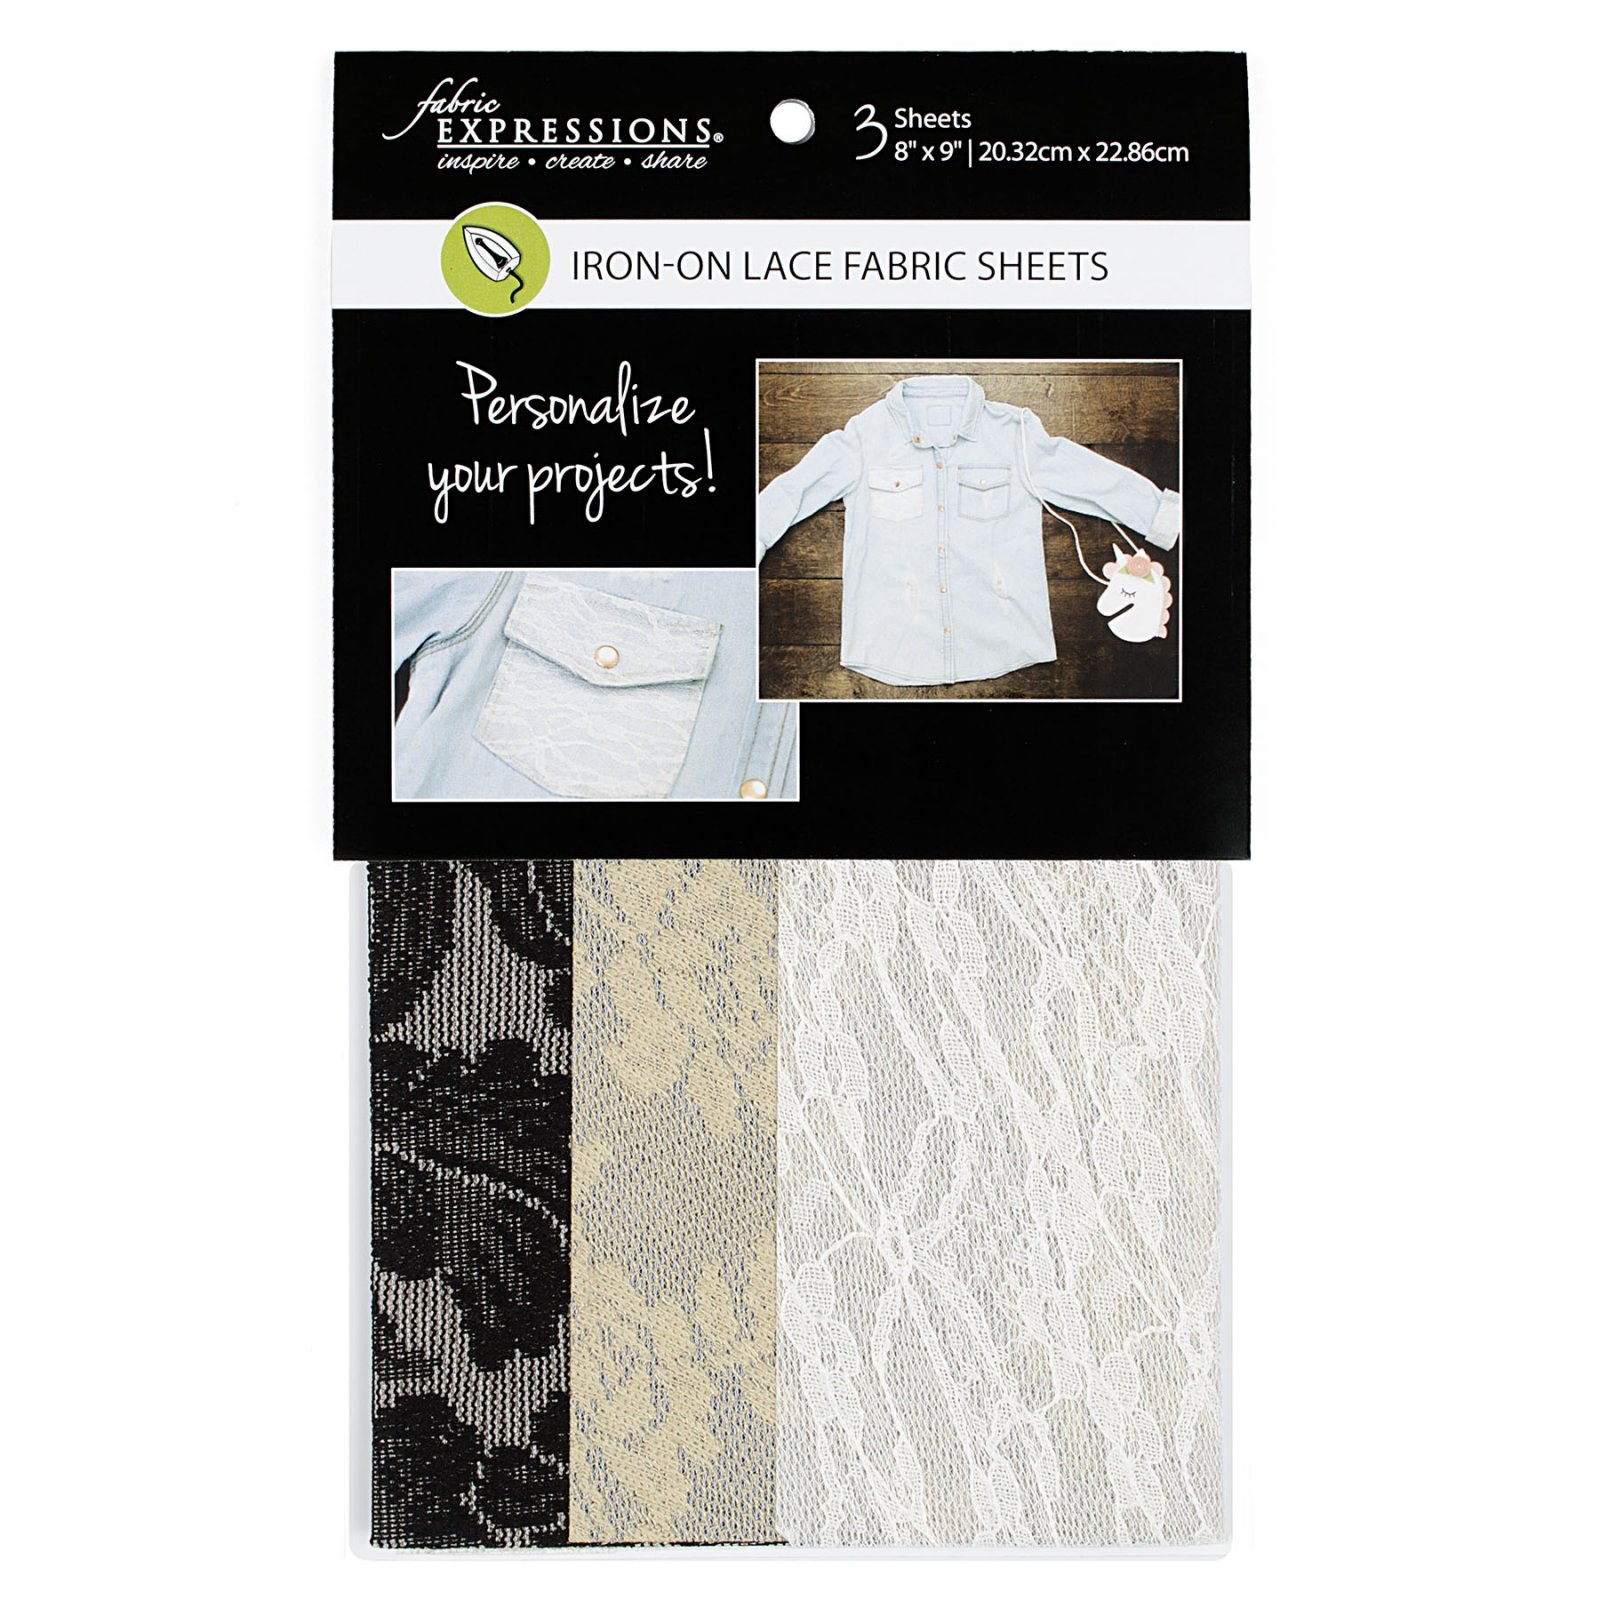 Fabric Expressions<br>Iron-on Lace Sheets<br>FE-FS-SP4-LCE3PC